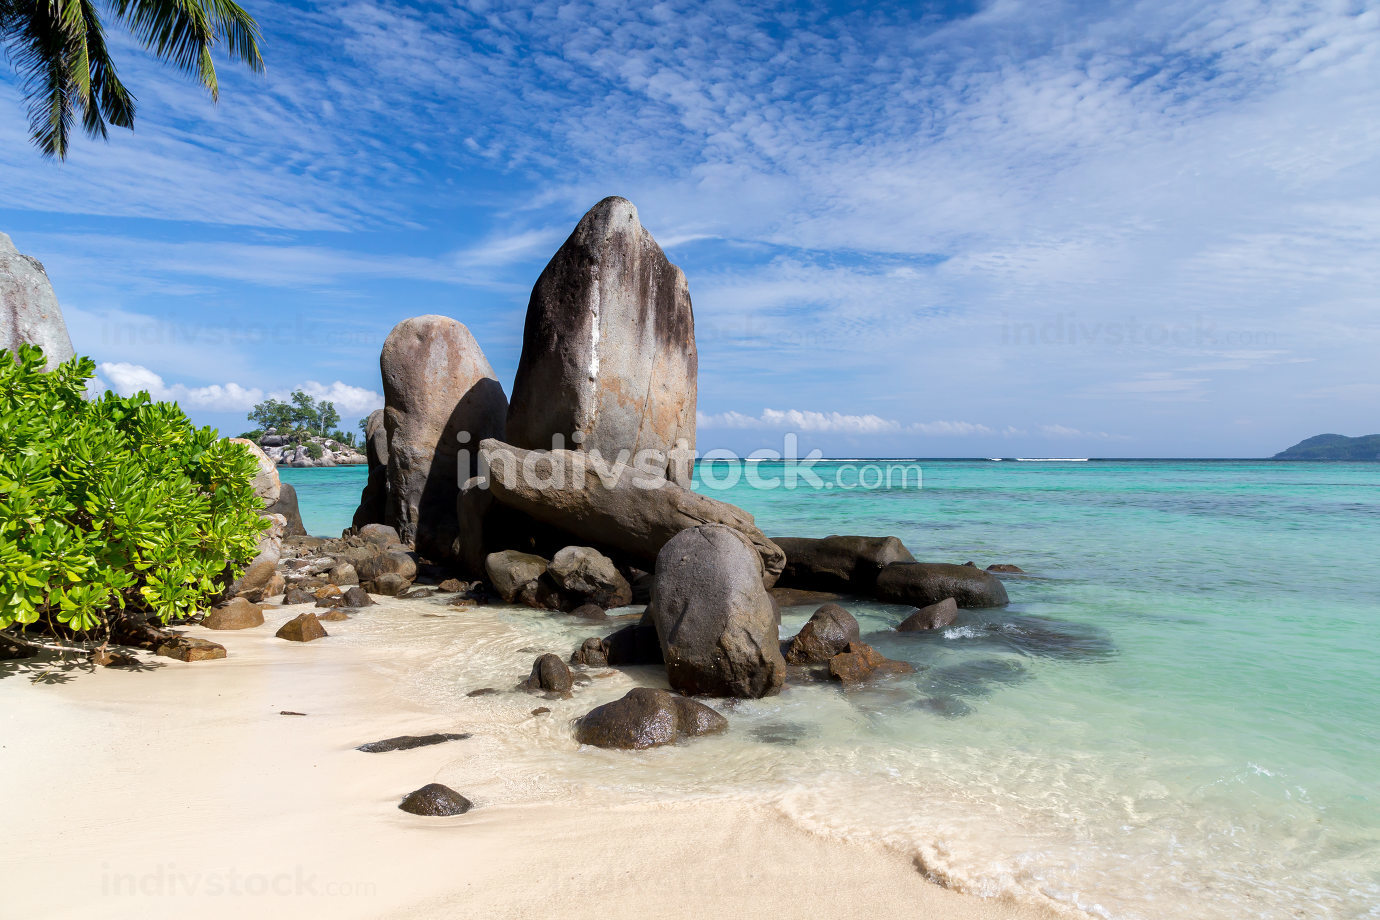 Big stones on the beach with a lot of green plants